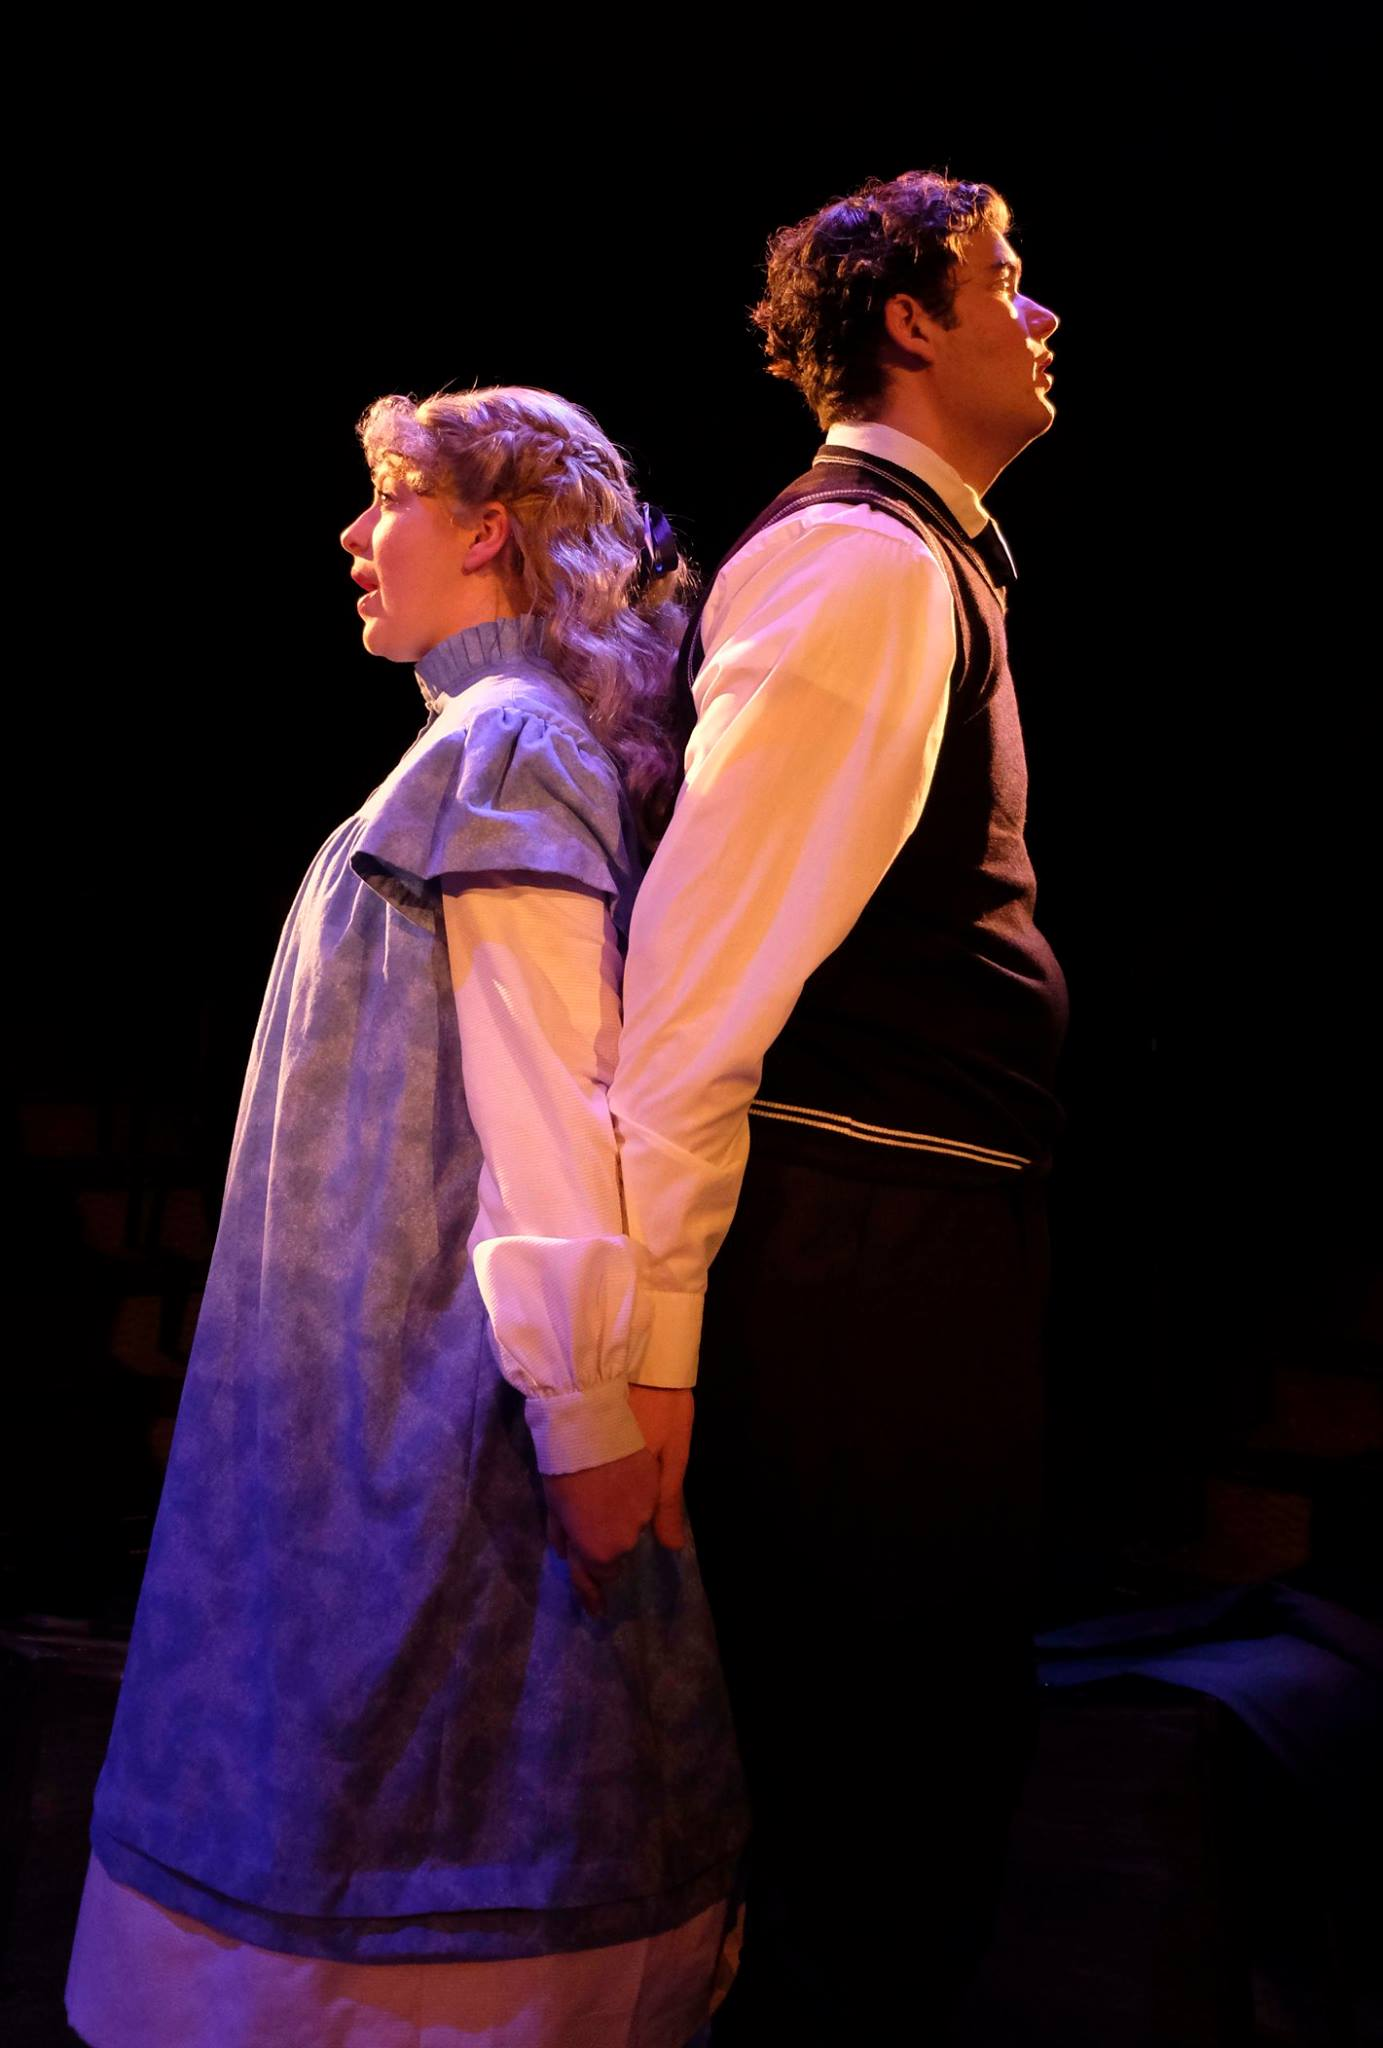 uploads/production_images/spring-awakening-mmnt-2019-bret-brookshire/spring_a_mmnt_03_couple_vertical.jpg